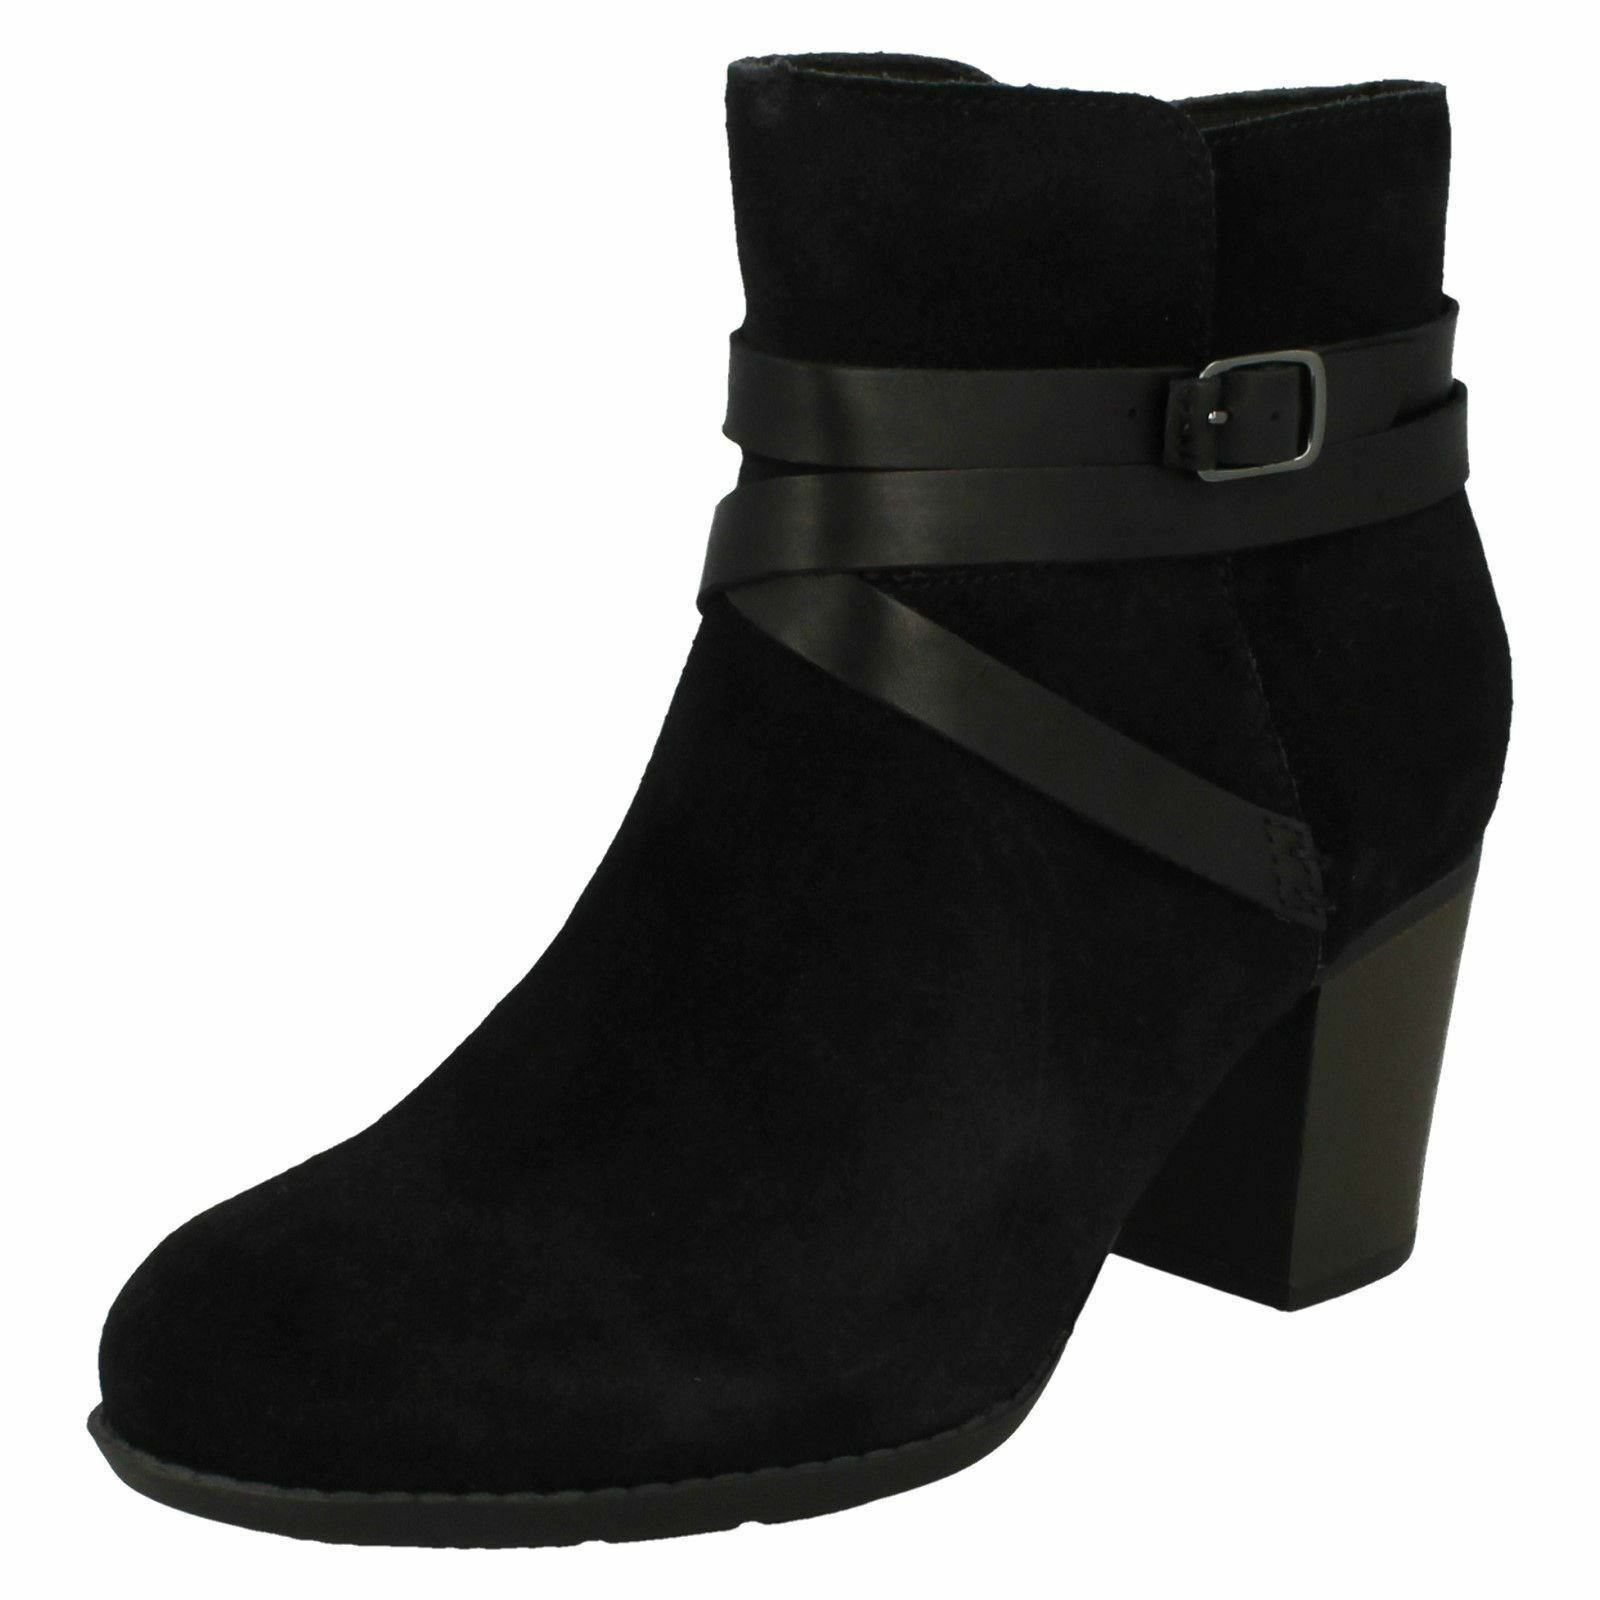 Enfield women coco suede stylish black mid heel ankle boots